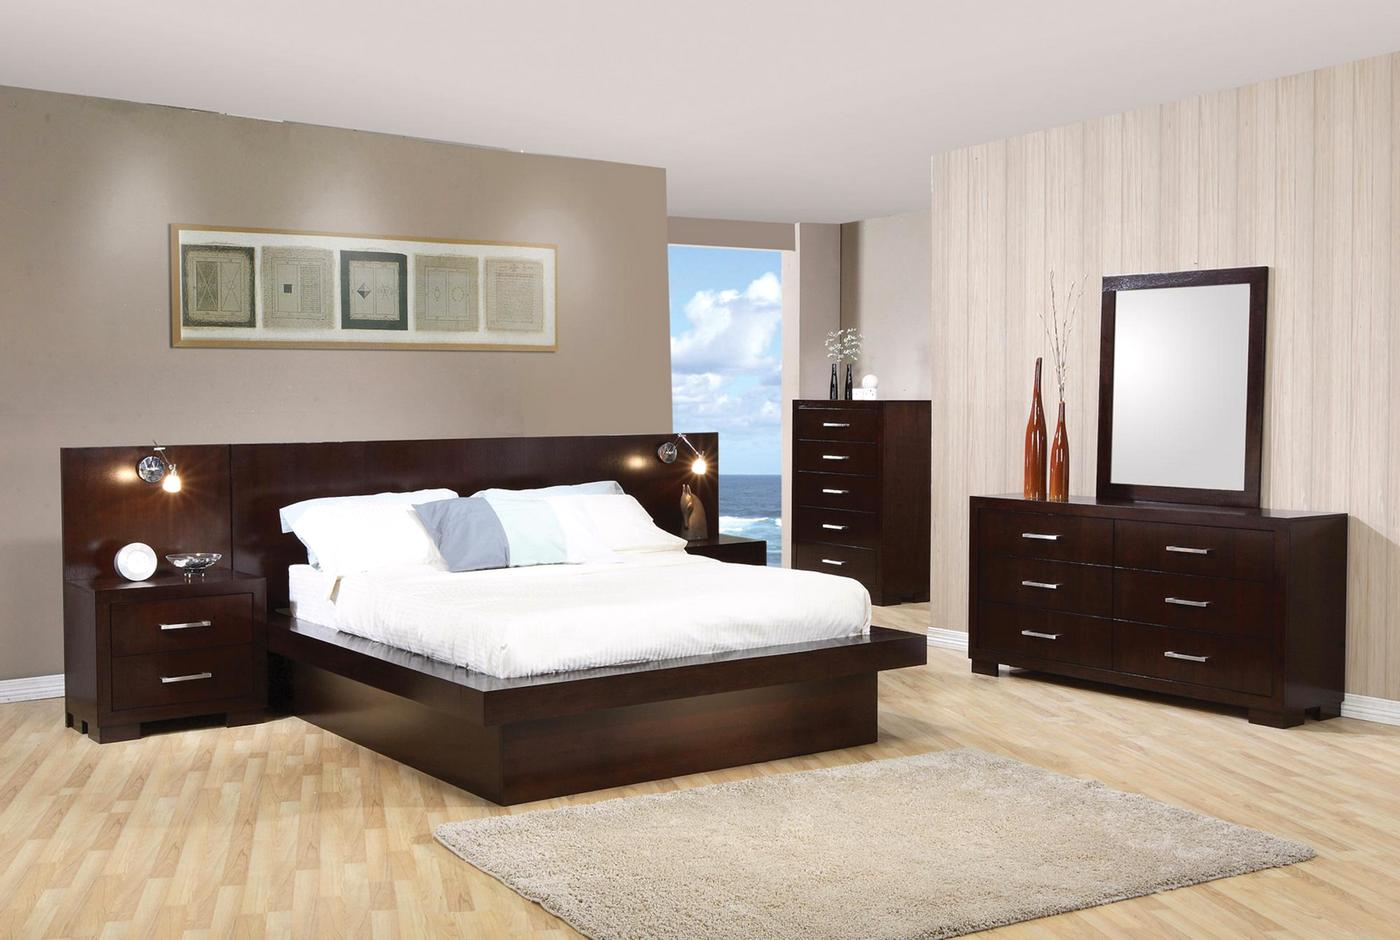 Najarian Furniture Contemporary Bedroom Set Studio Na Stbset: Modern Bedroom Furiture